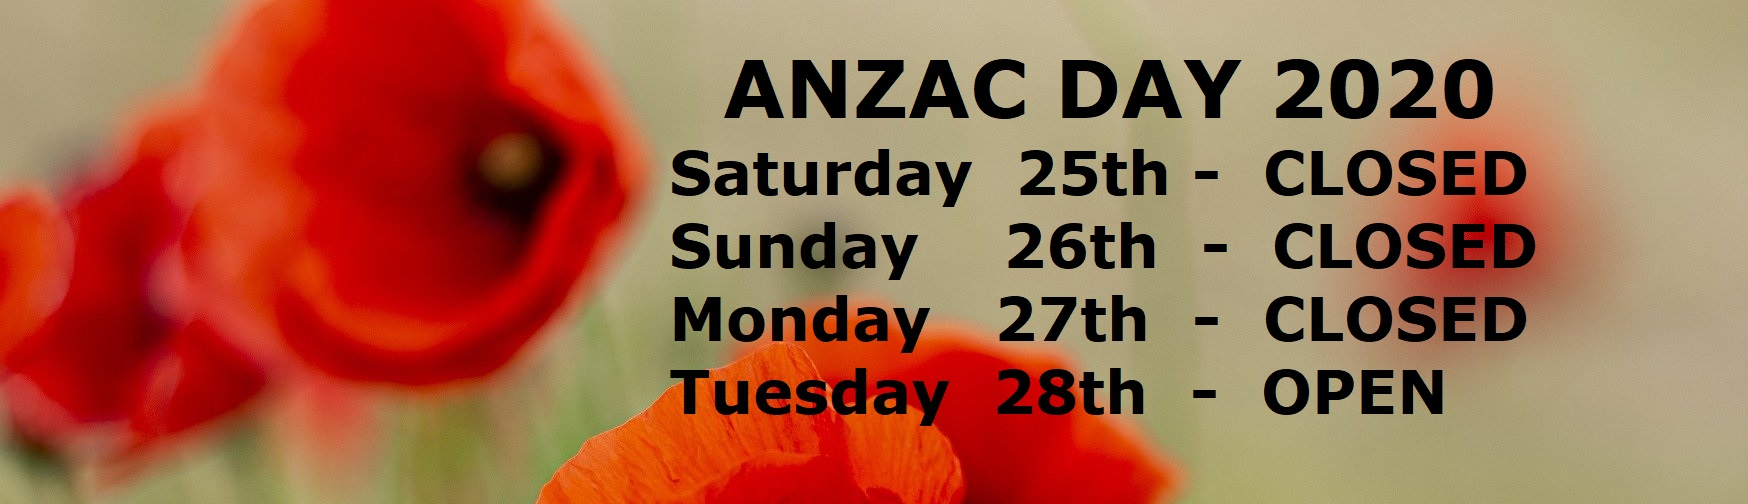 ANZAC_DAY_HOURS_2020